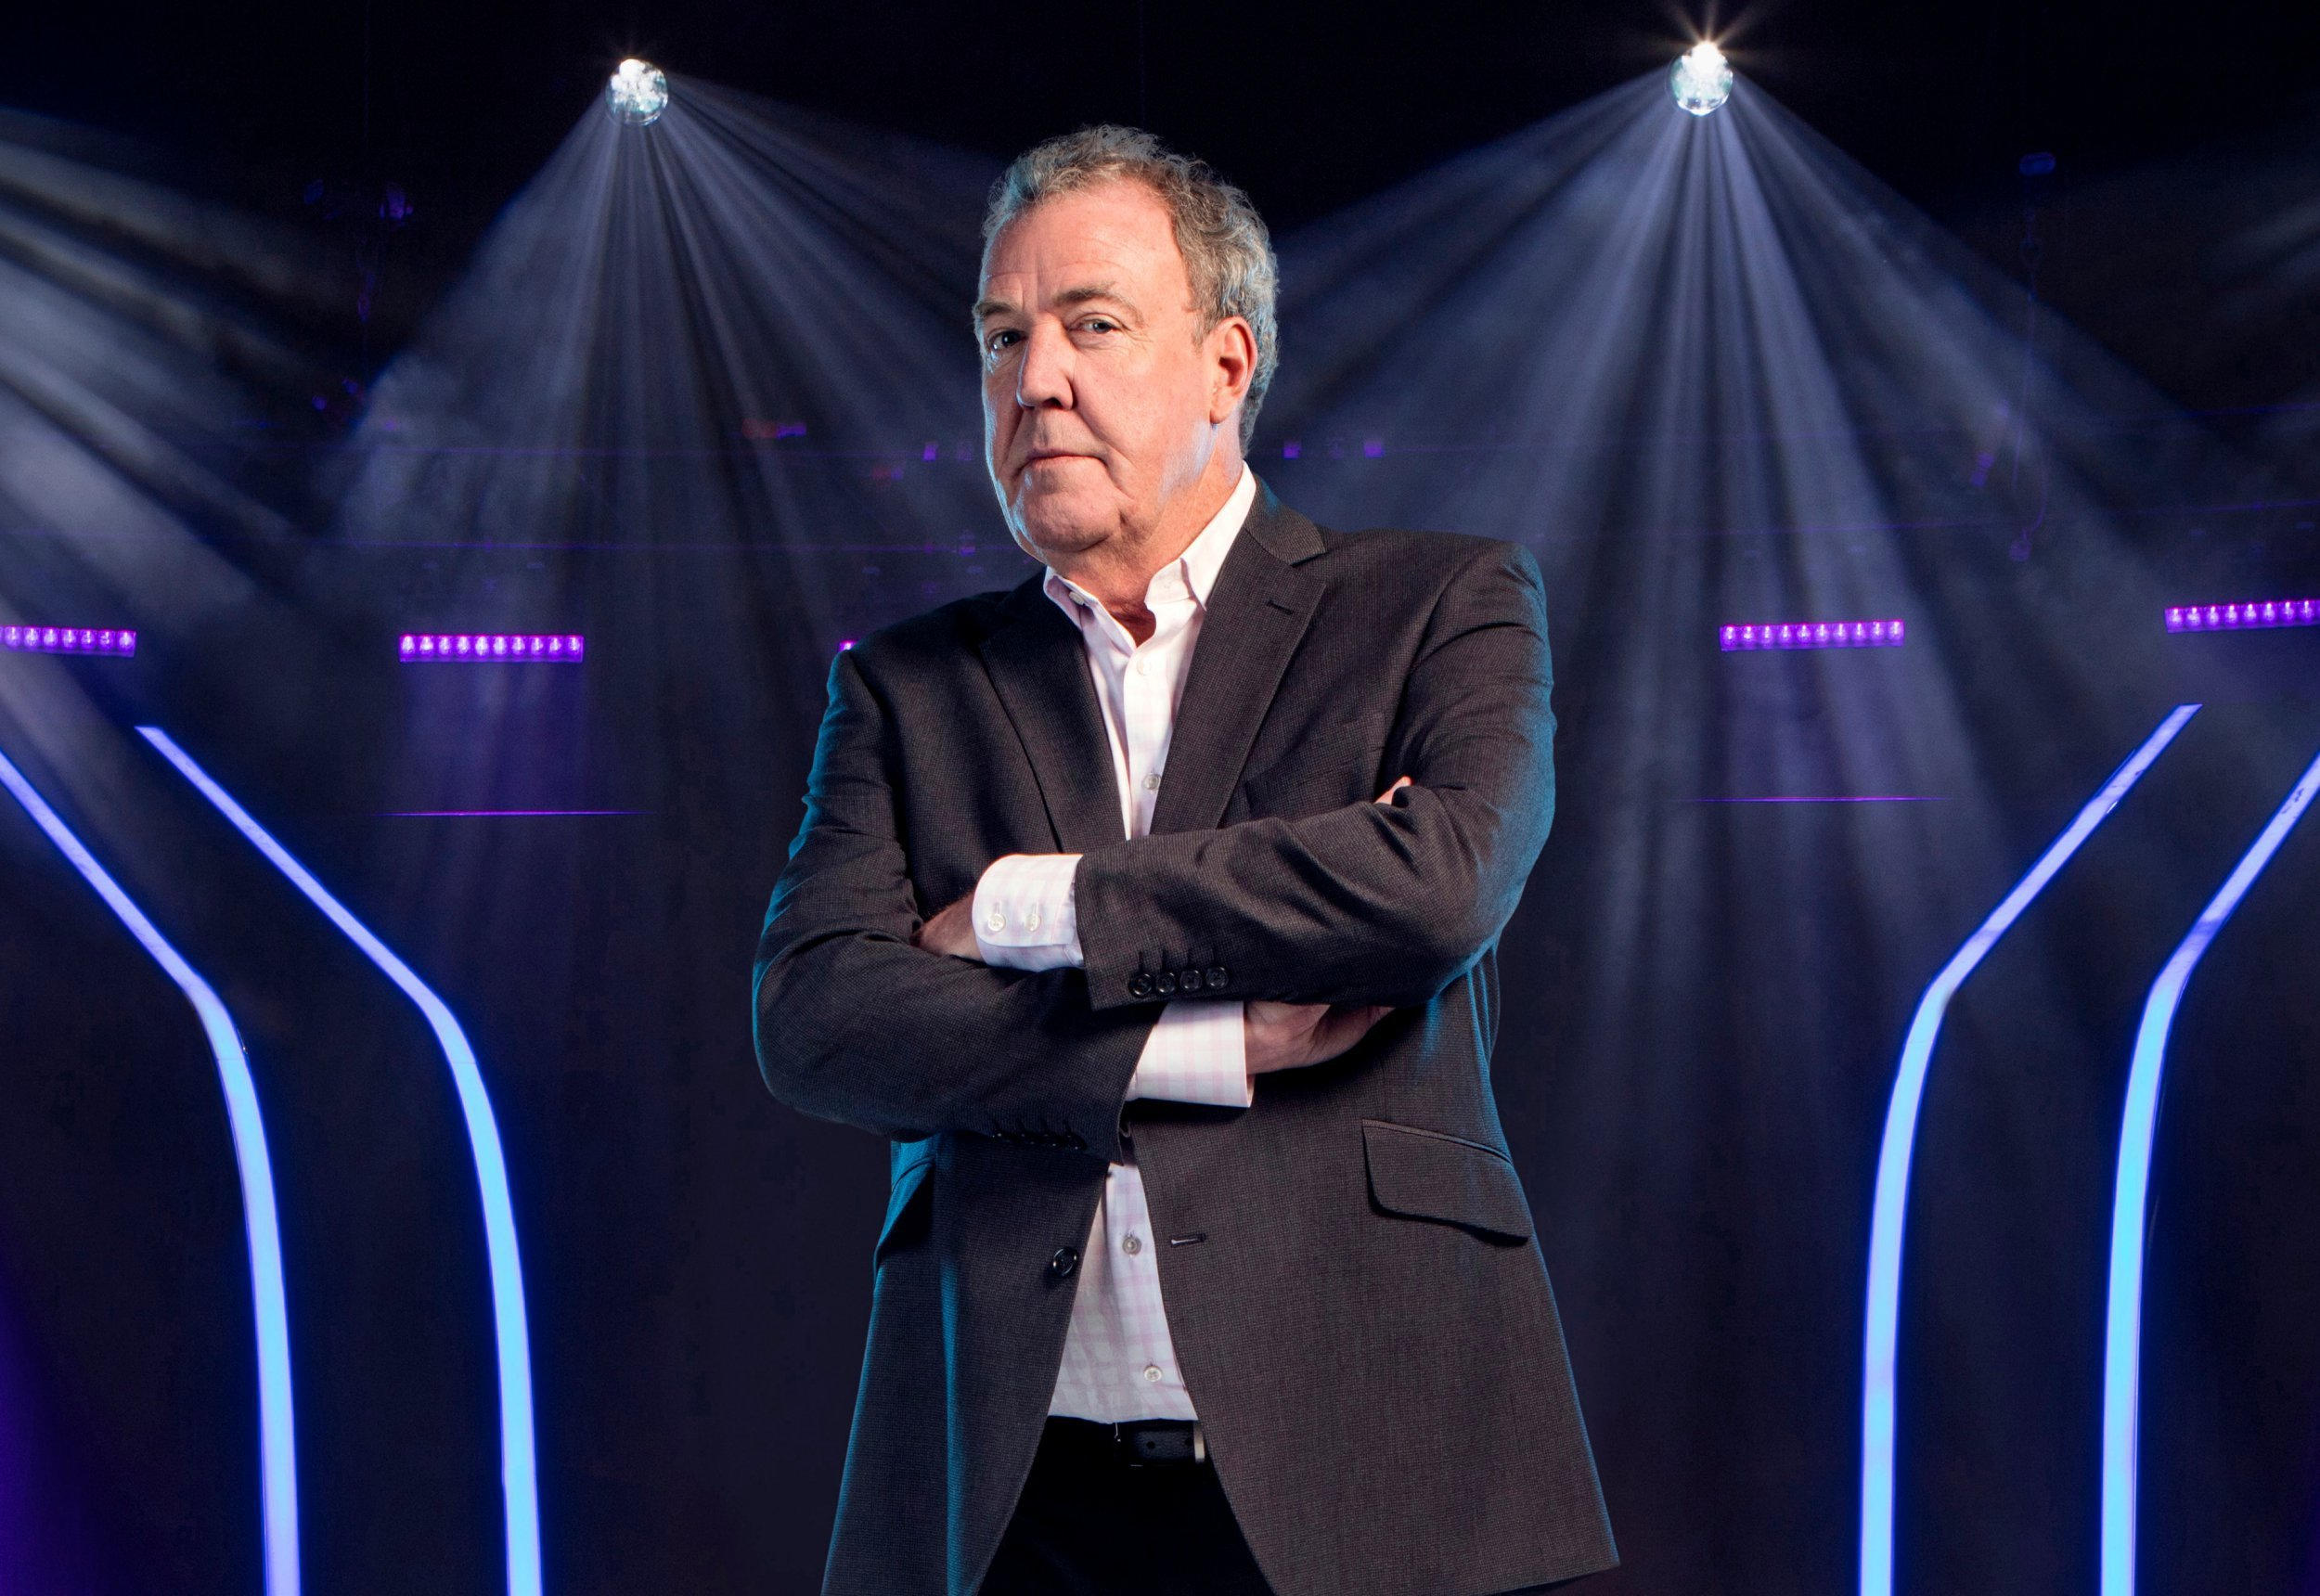 Richard Hammond urges Jeremy Clarkson to get a 'f**king hearing aid' for Who Wants To Be A Millionaire? EMBARGOED PRESS PACK 22.30